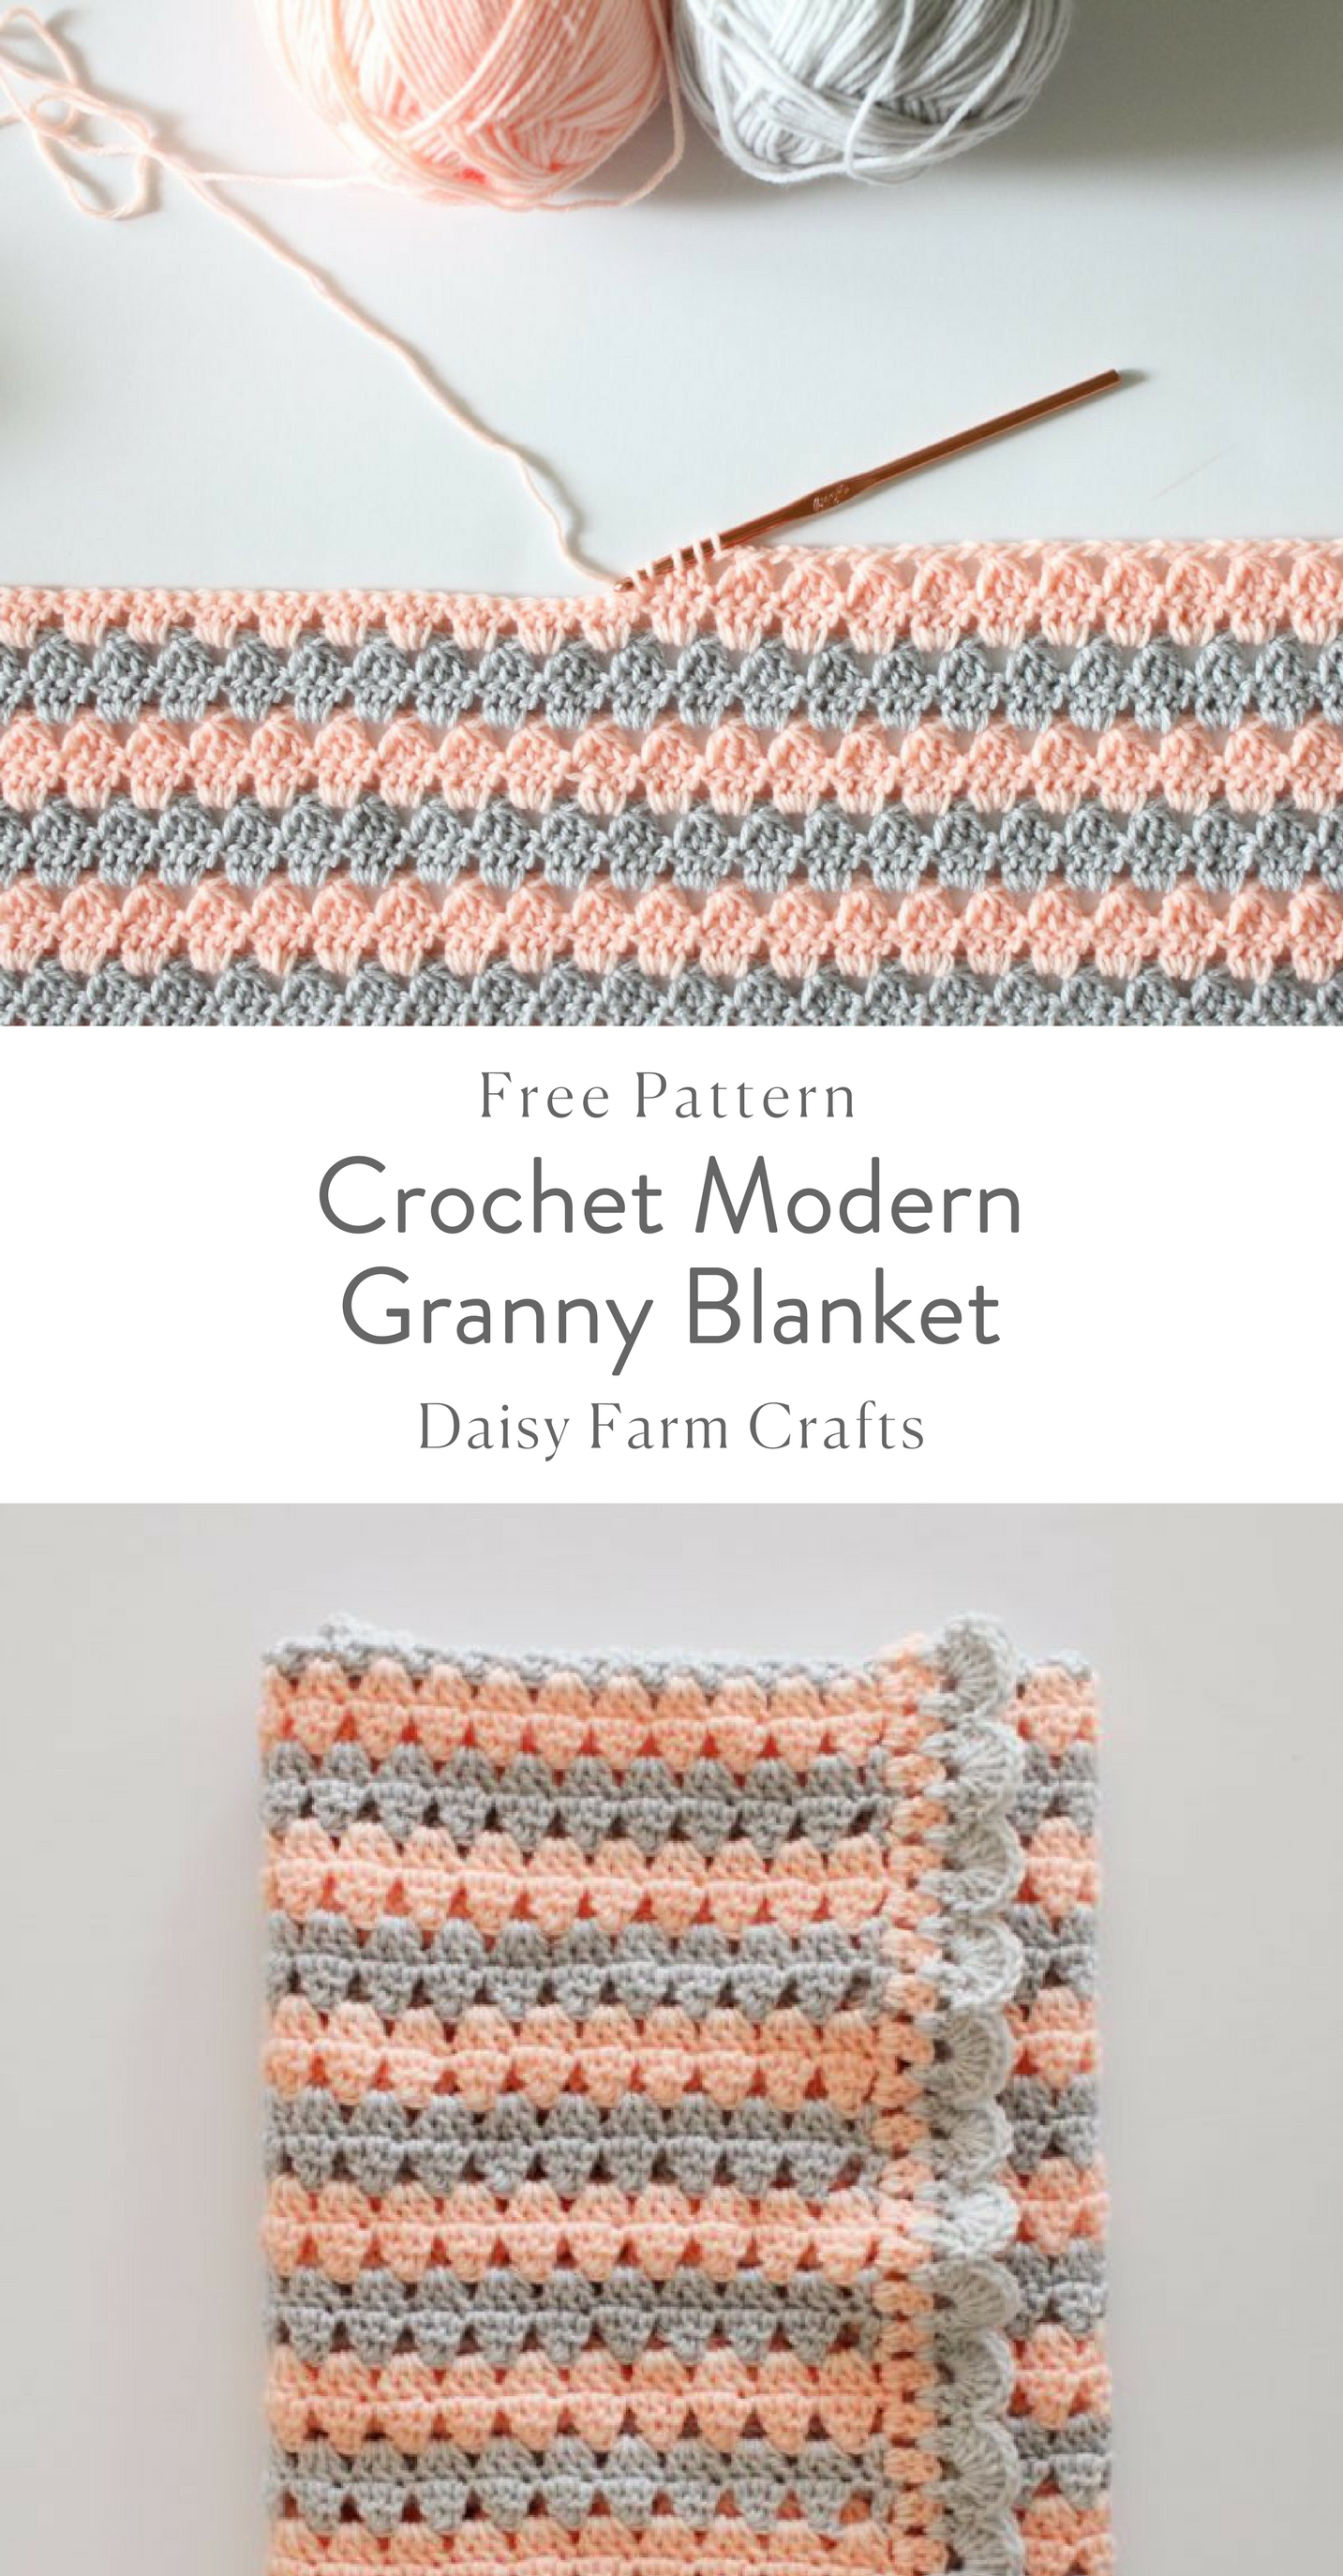 Free Pattern - Crochet Modern Granny Blanket | yet another awesome ...